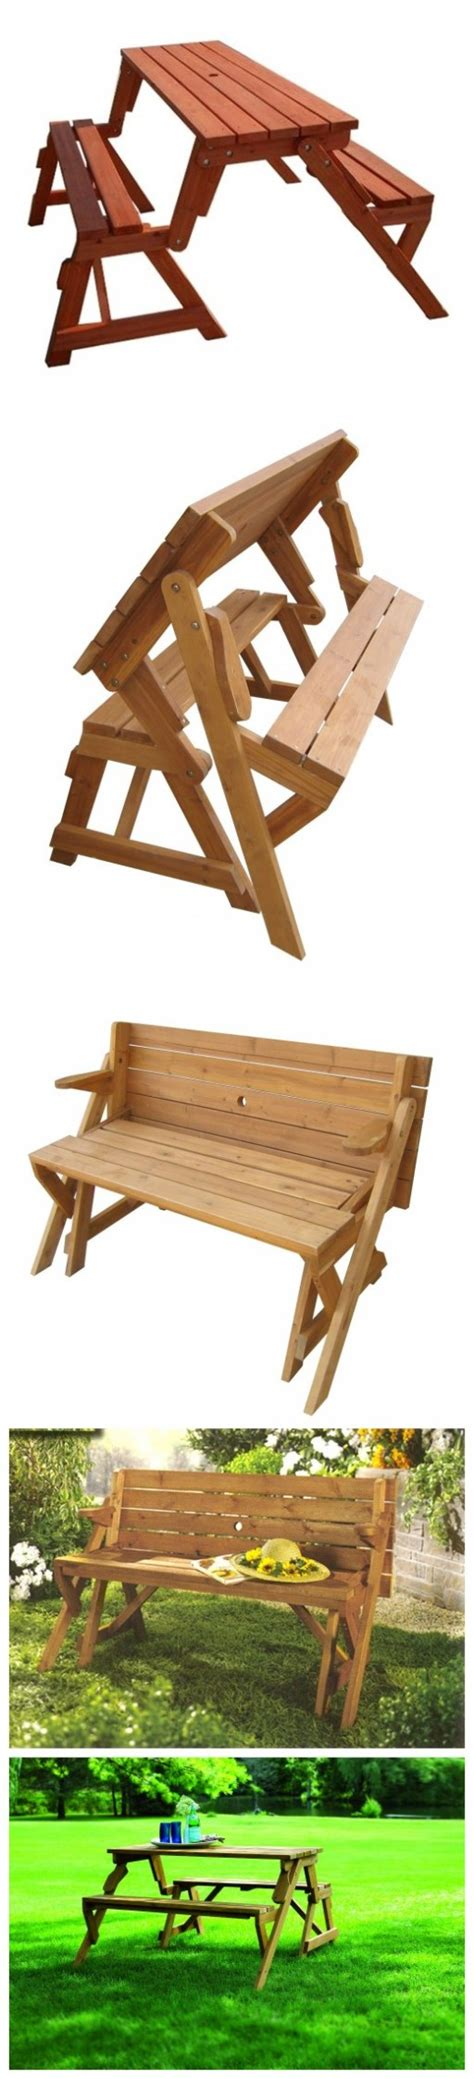 folding picnic table and bench diy folding adirondack chair plans how to build picnic